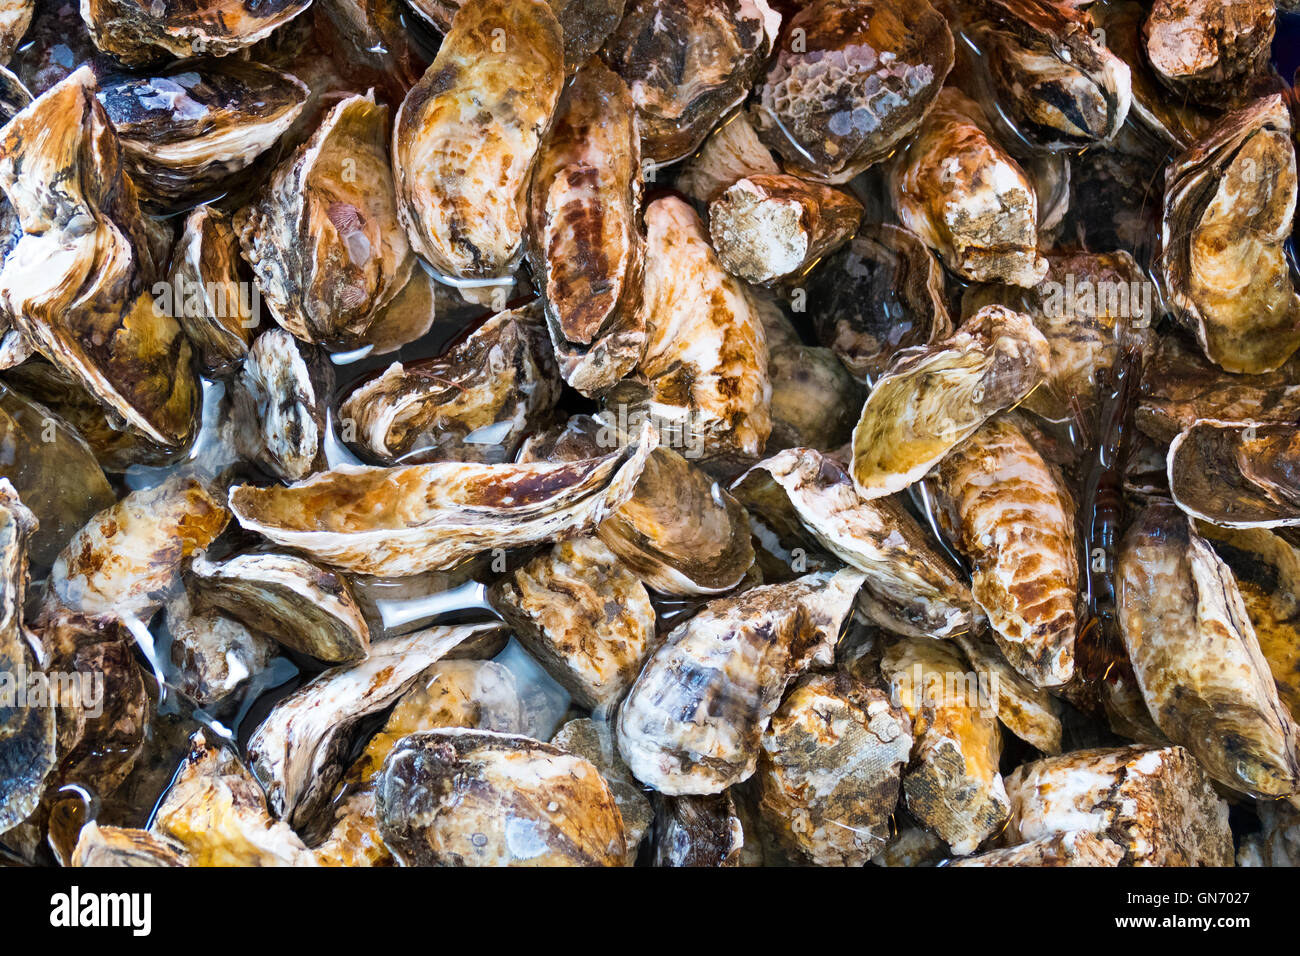 Large Amounts of Oysters - Stock Image